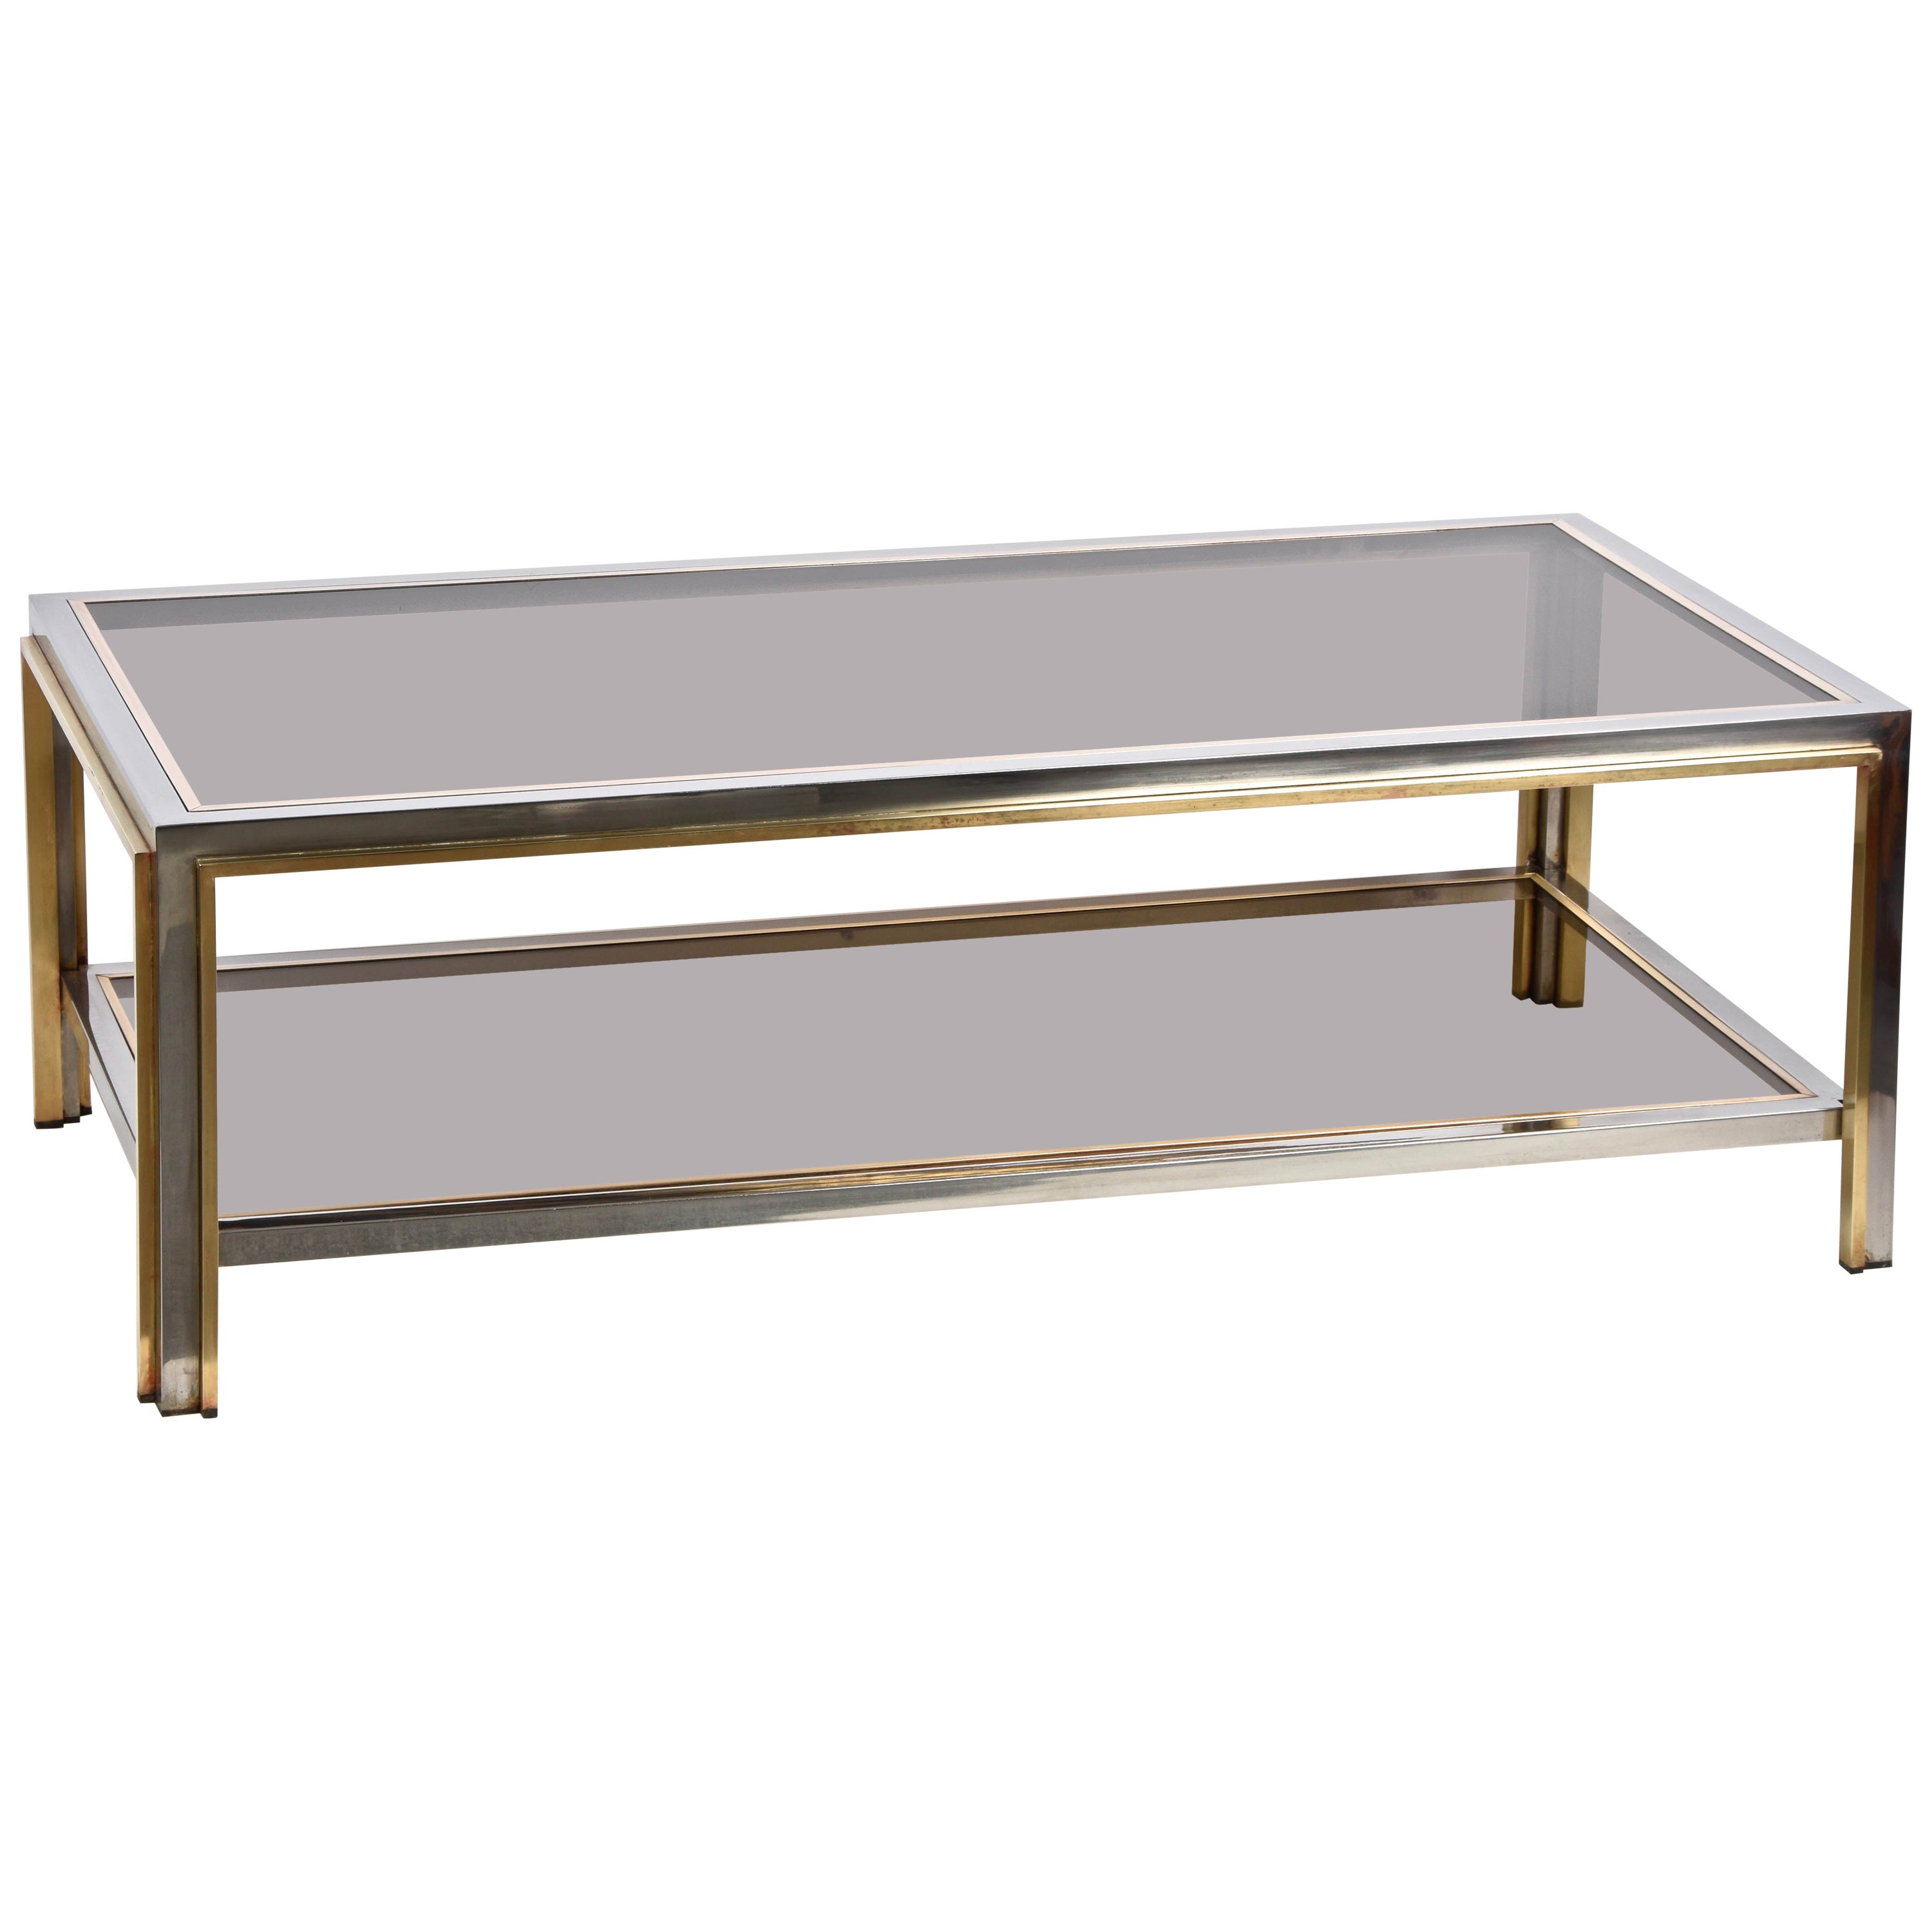 Midcentury Brass and Chrome and Glass Italian Coffee Table after Romeo Rega 1970